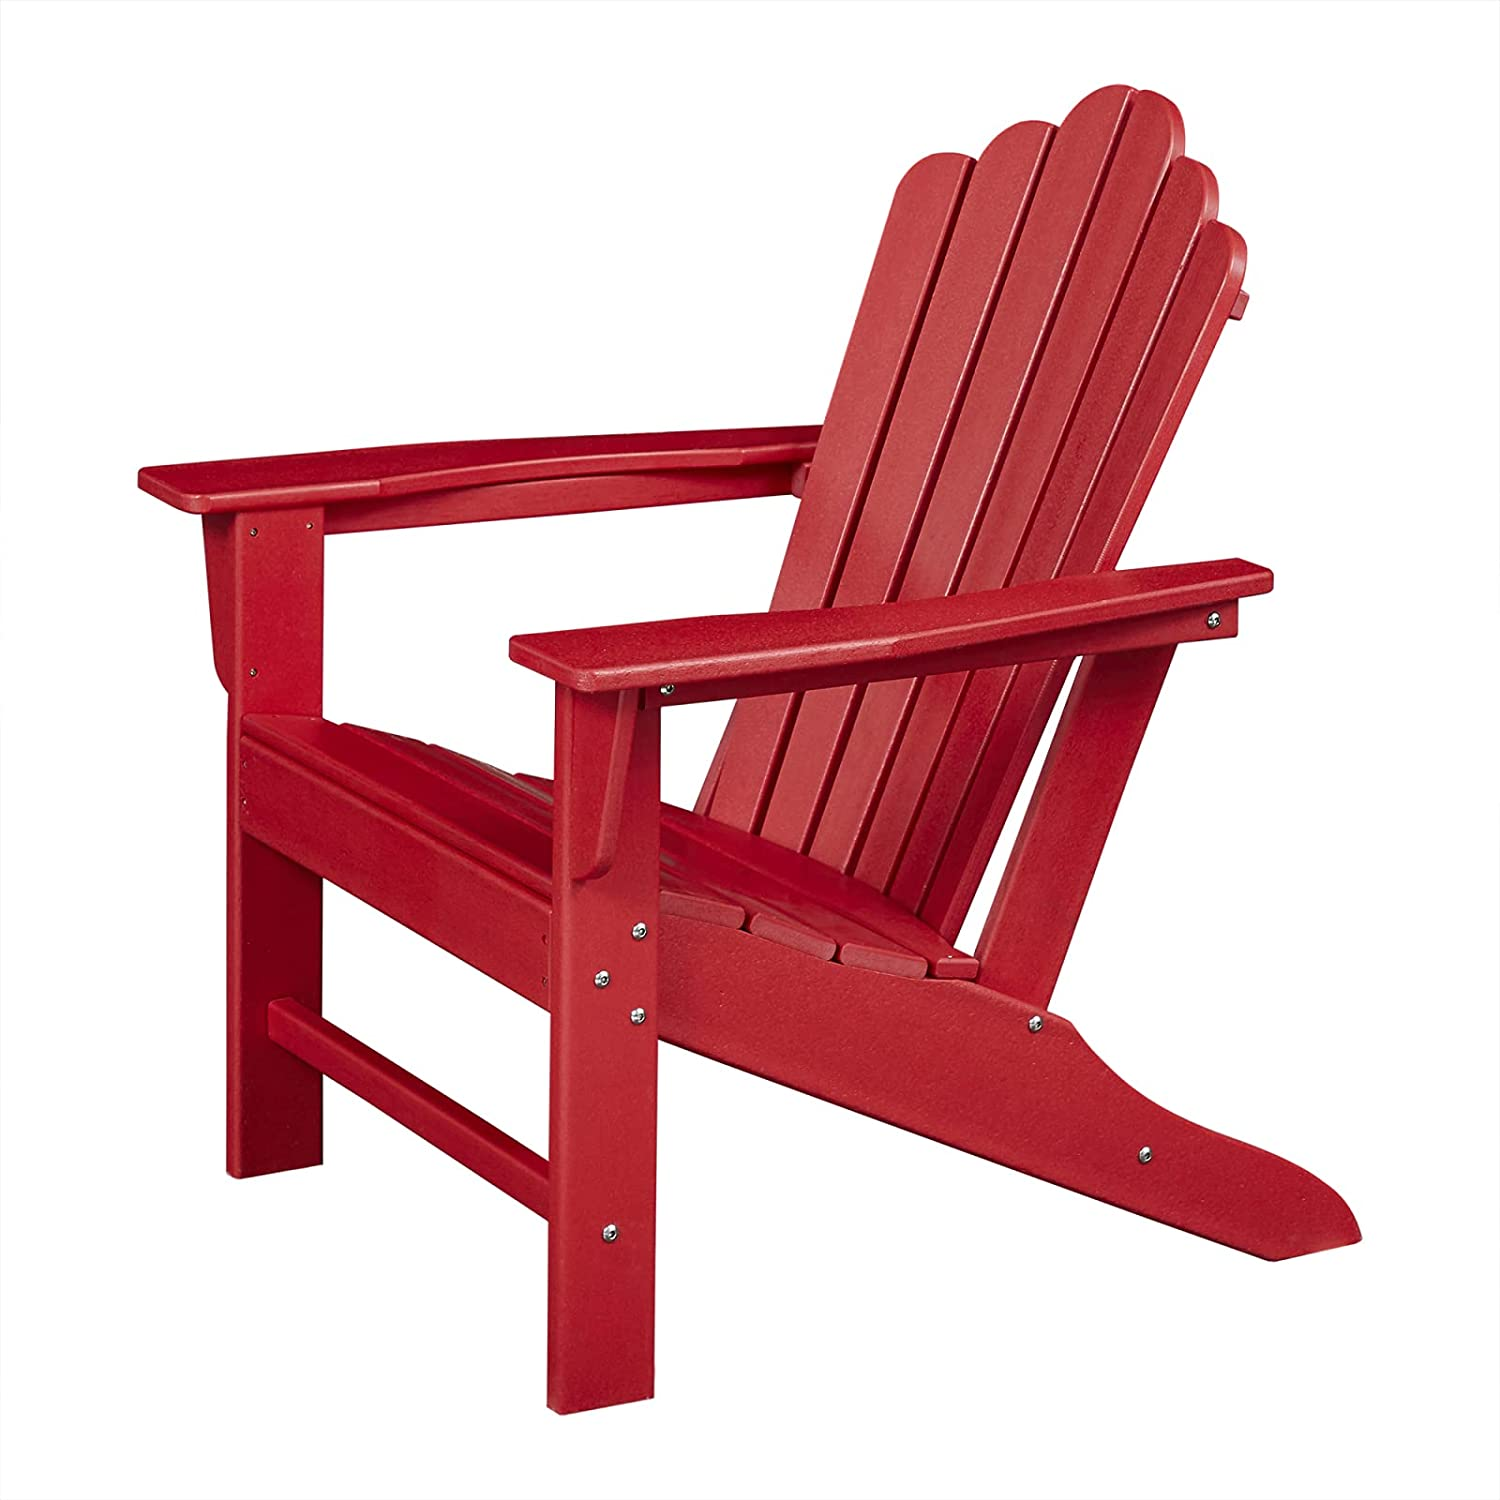 Classic Outdoor Adirondack Special Campaign Chair Plastic HDPE Resistant shipfree Weather